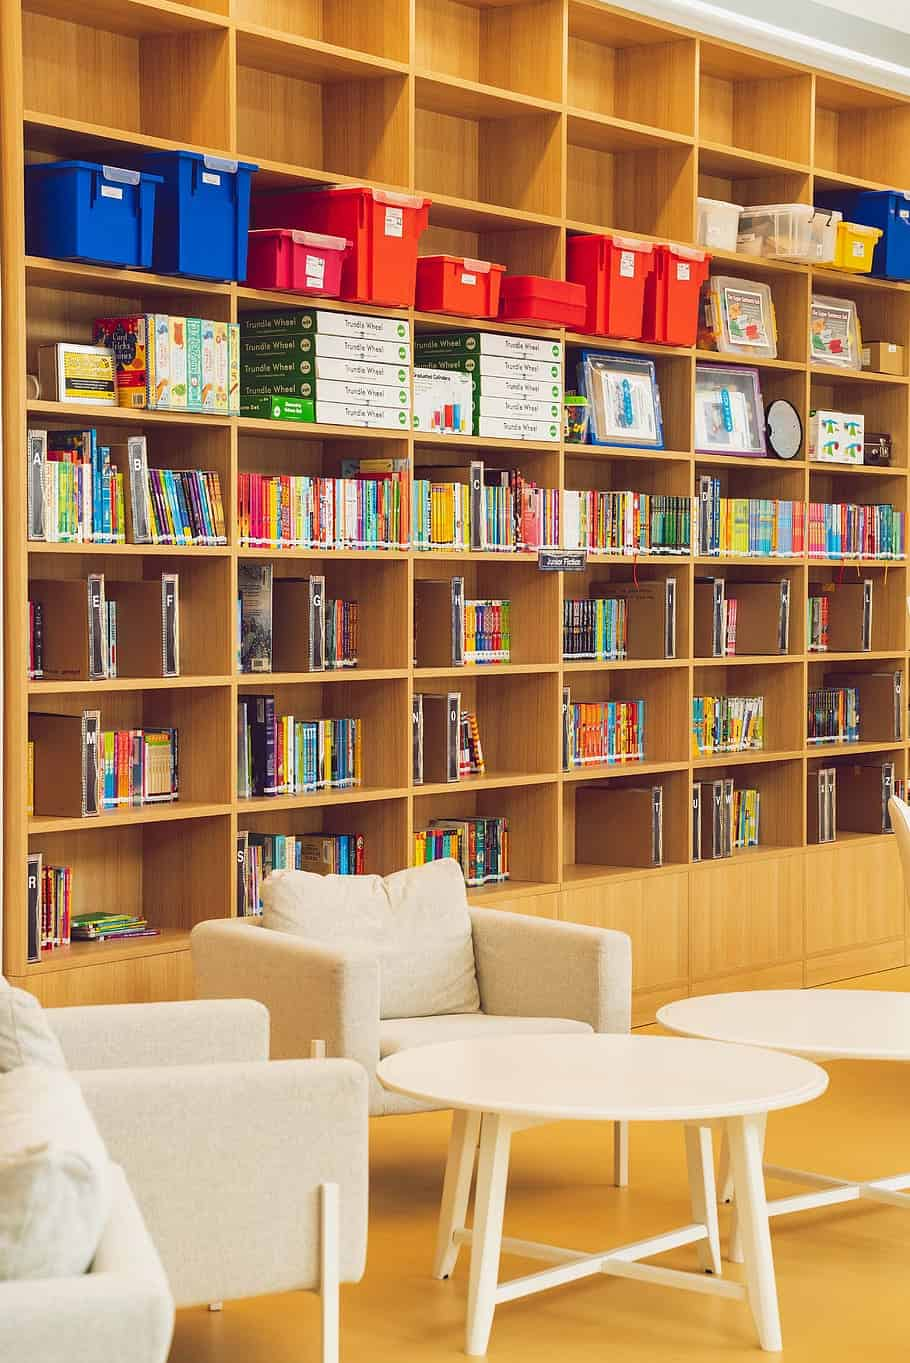 Joinery Dubai specializes in custom manufacturing of library room furniture listed as: built-ins, coffee tables, dine-ins, open bookcases, shelves within Dubai.